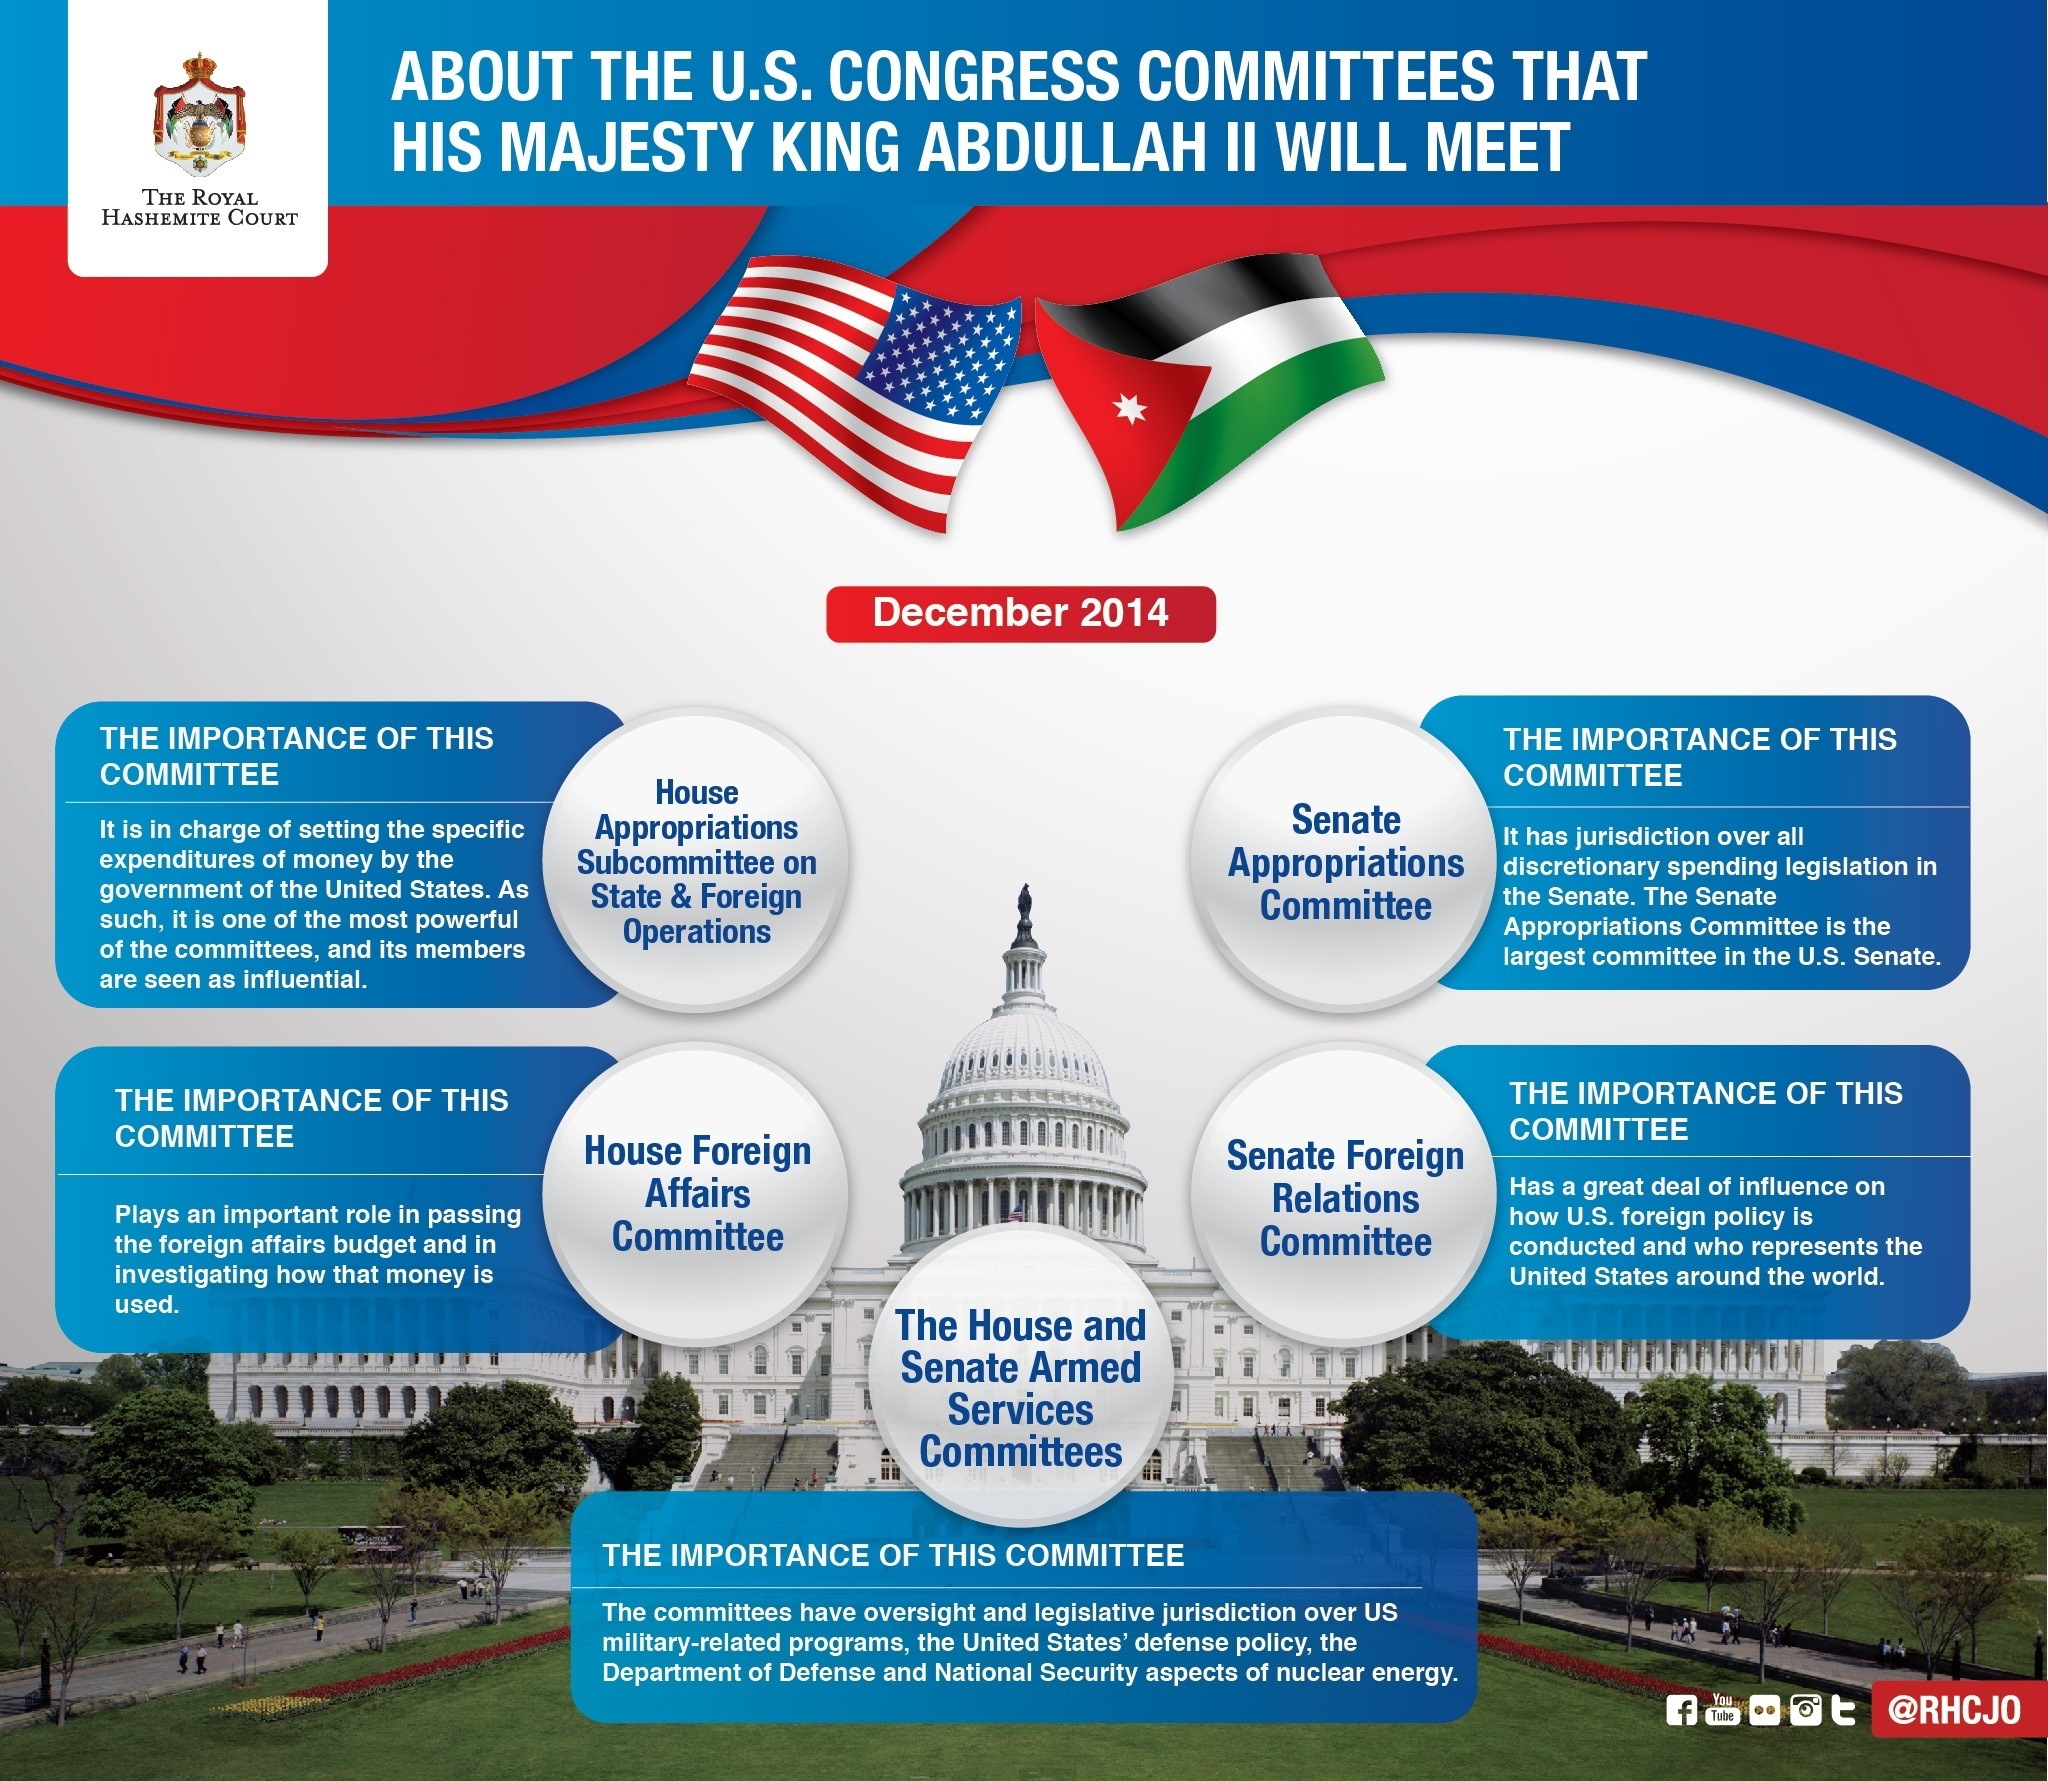 About The U.S. Congress committees that His Majesty King Abdullah II will meet